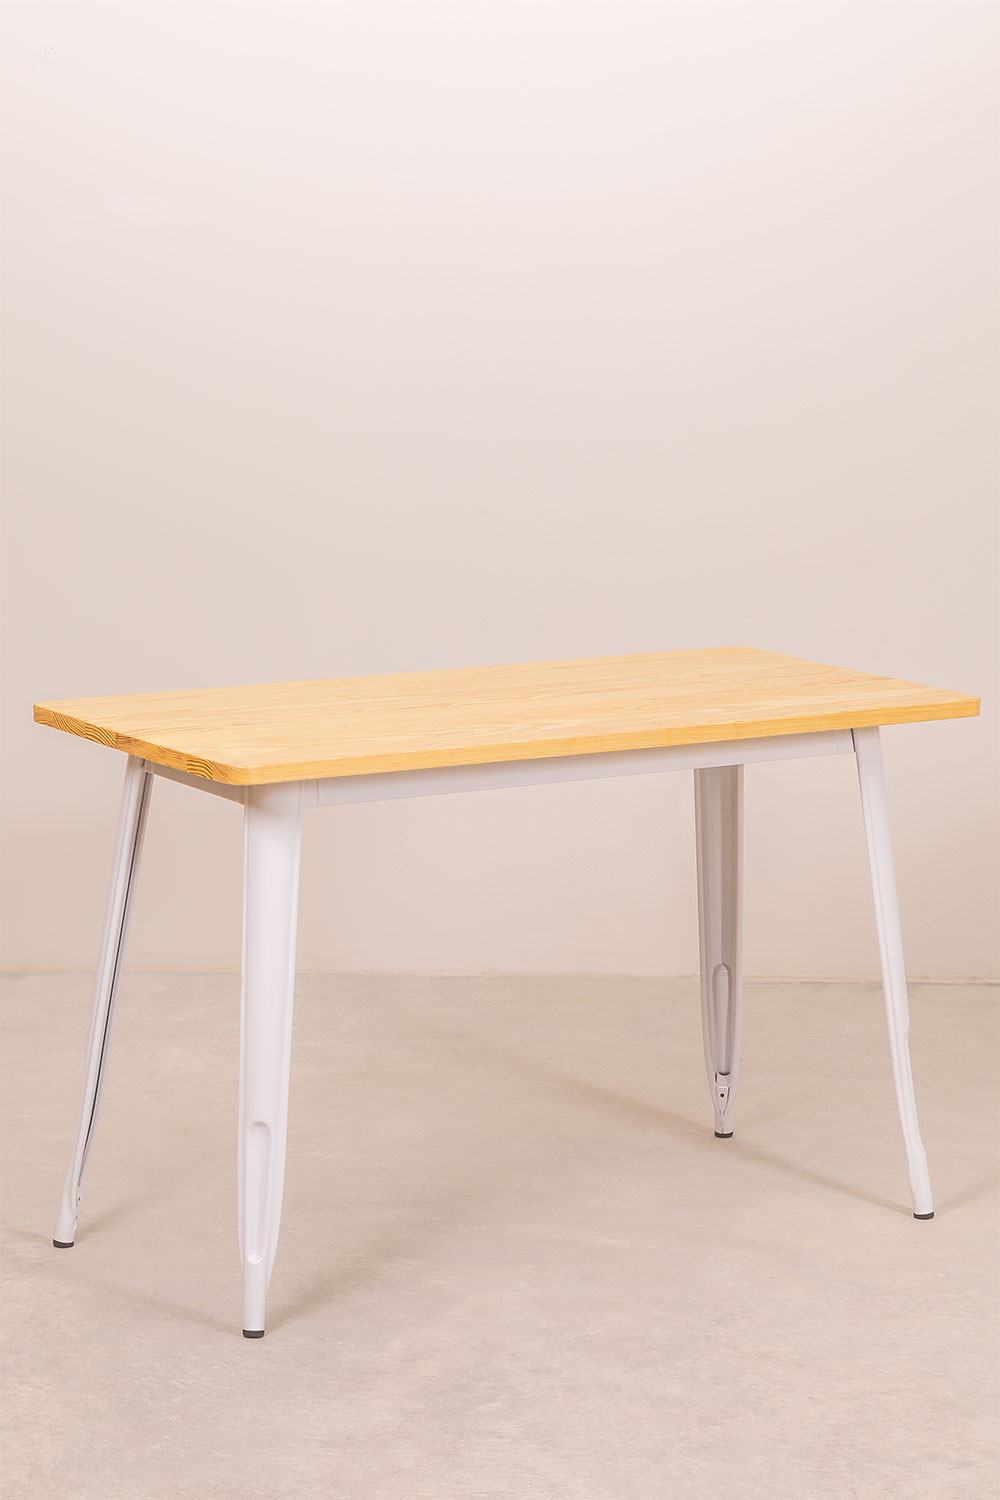 Wooden LIX Table (120x60), gallery image 1